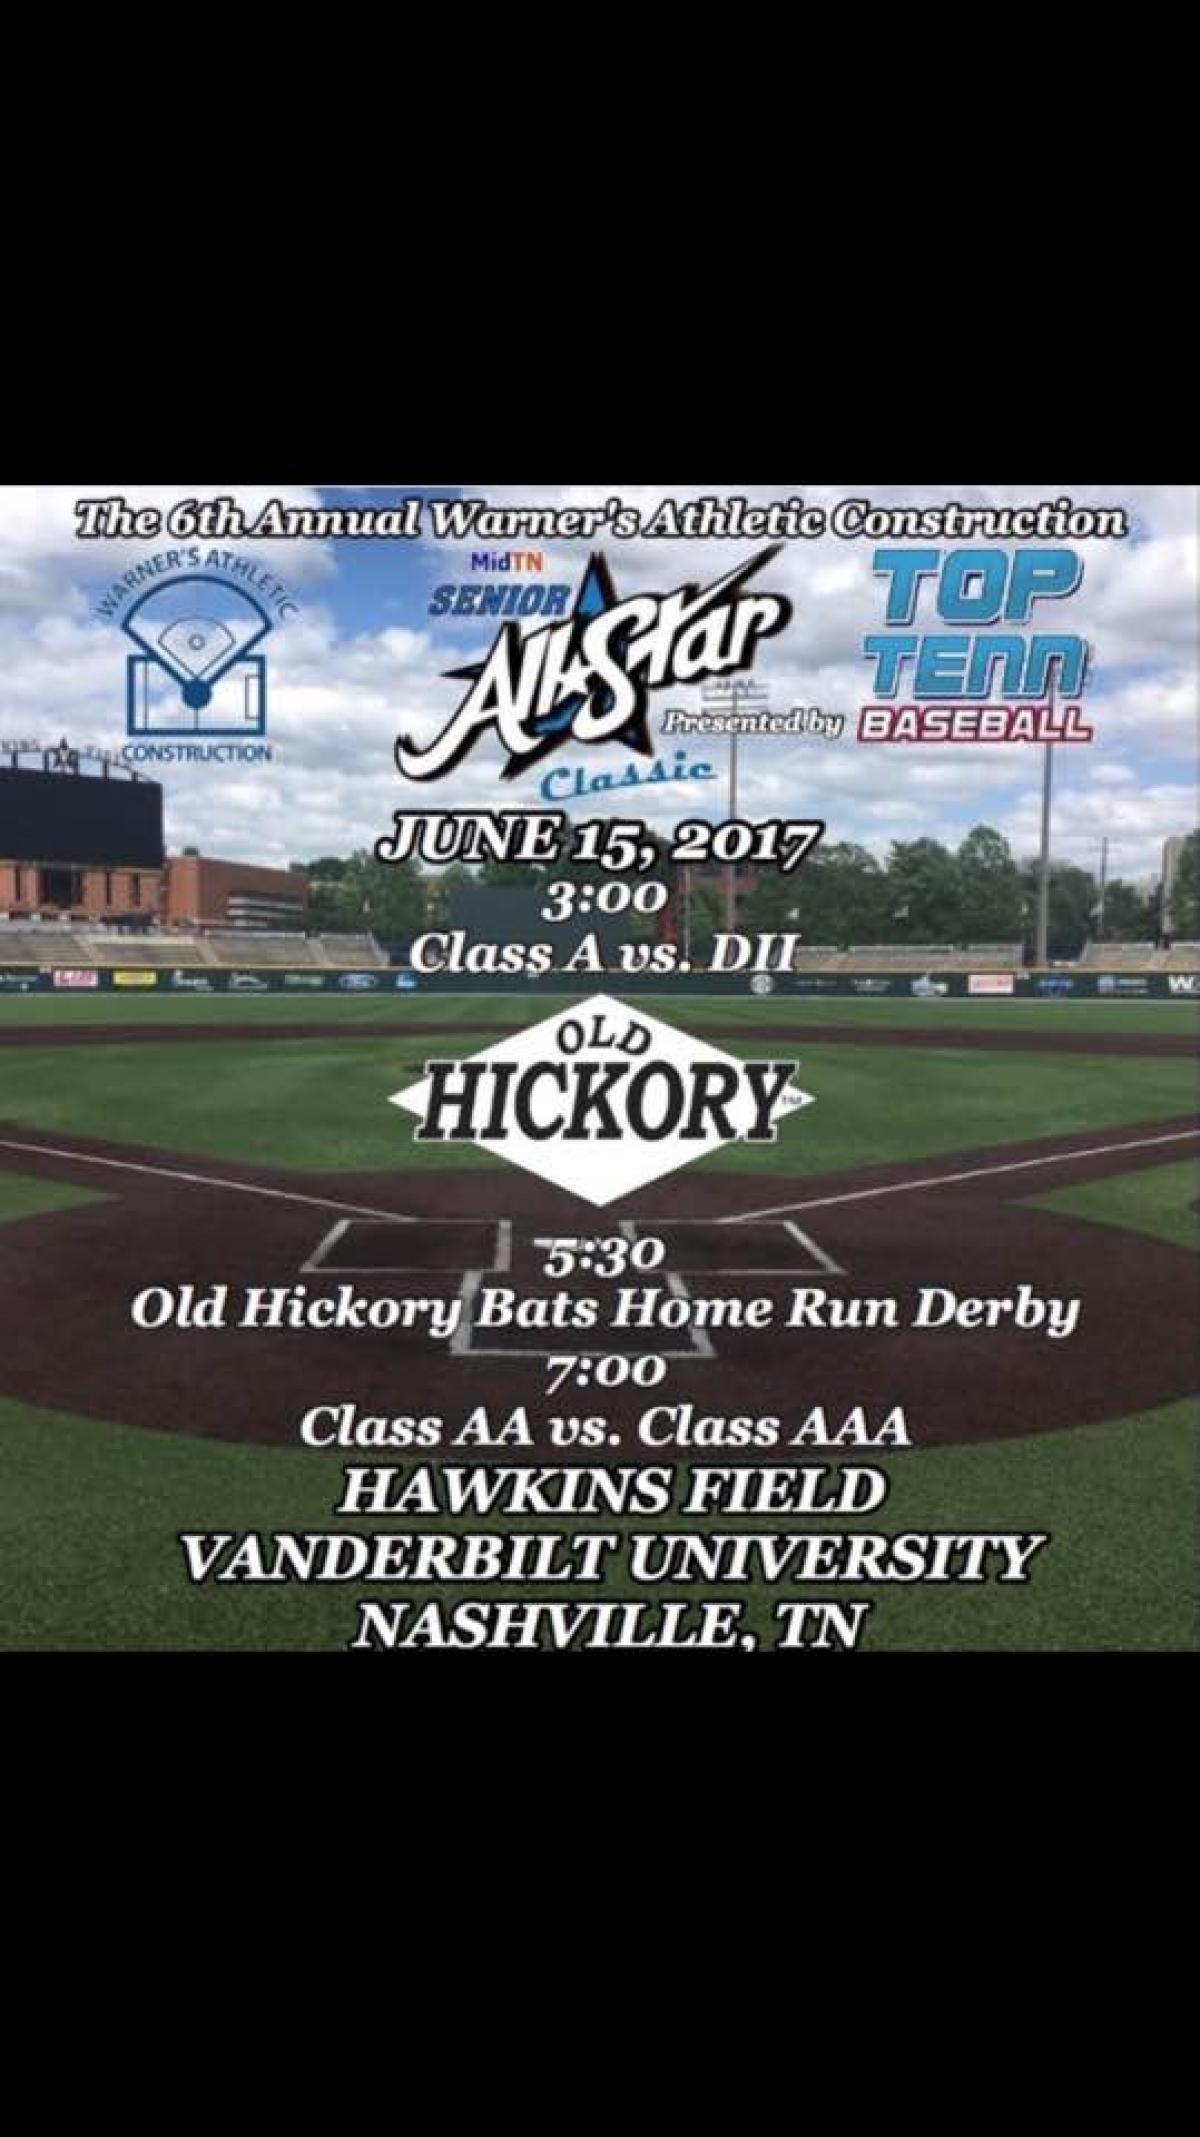 Two Tigers to Play in Mid-TN Senior All-Star Classic